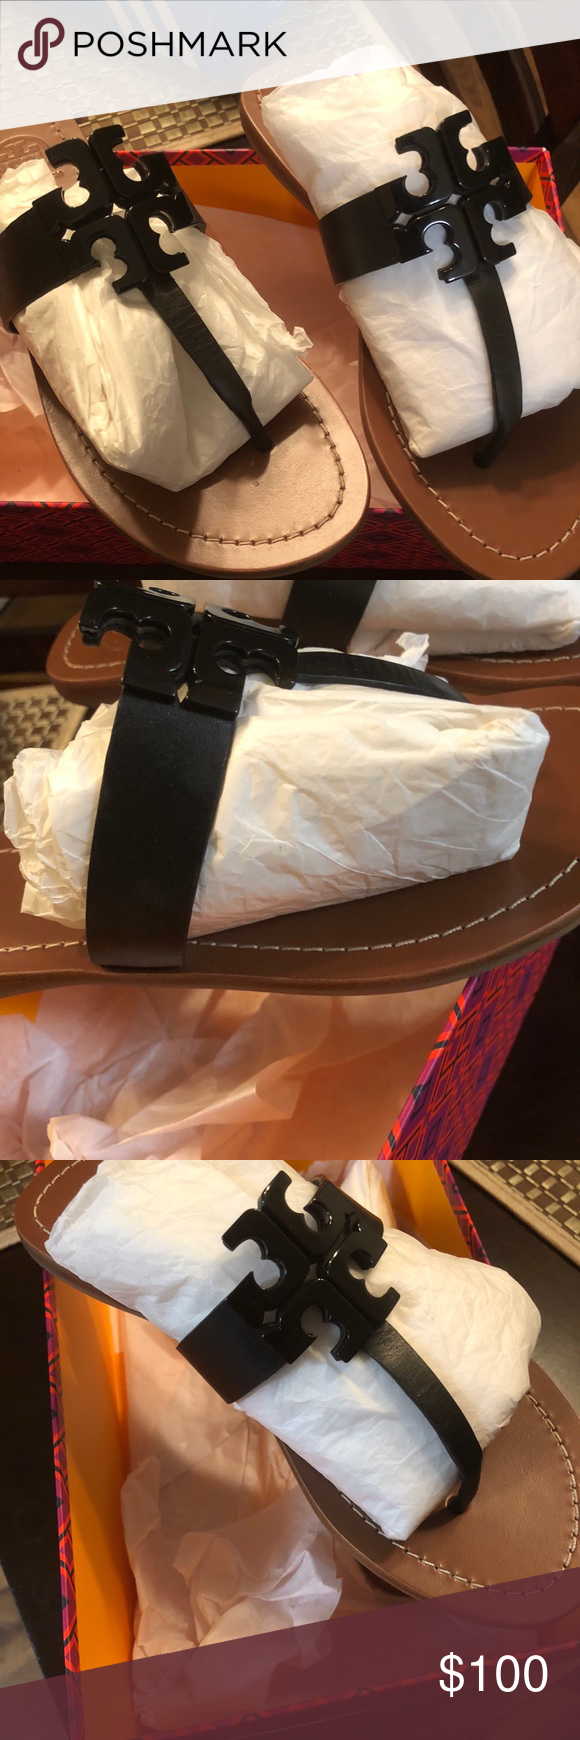 d7922fece2c Tory Burch Sandals Tory Burch Moore 2 Flat Leather Thong Sandals...  Authentic. Purchased from Nordstrom... Worn 3 times!! Great Condition.